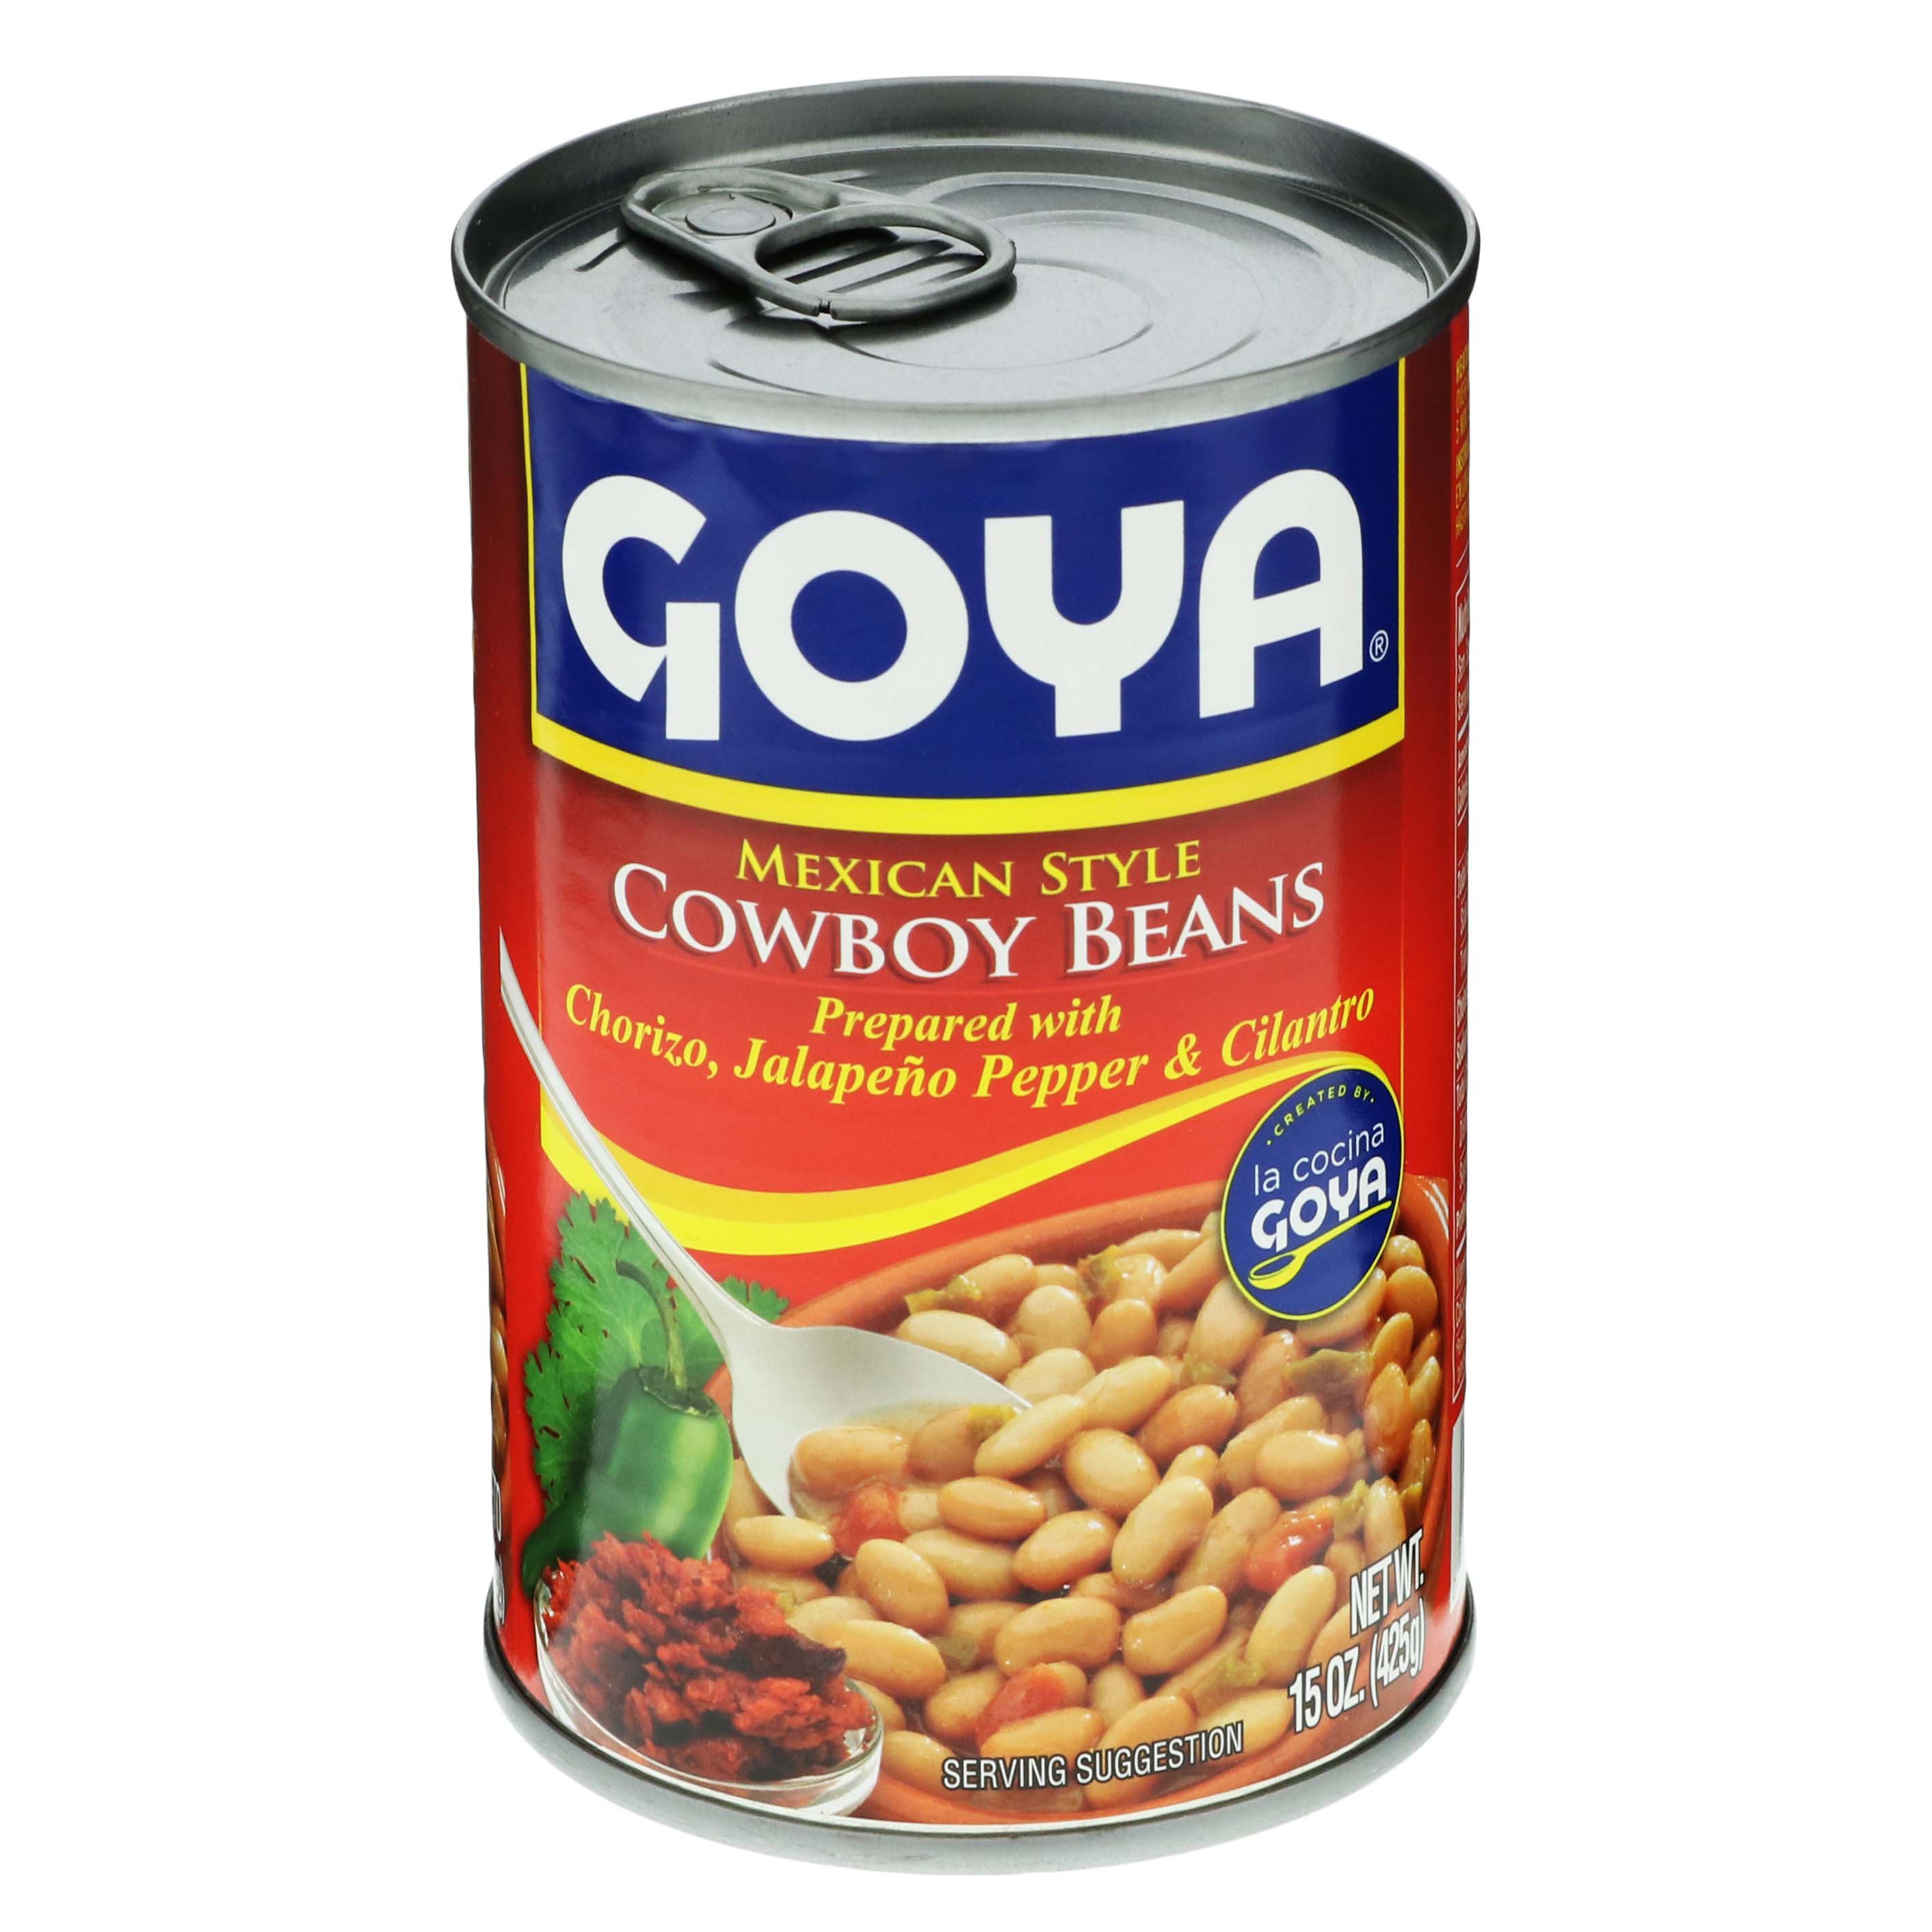 goya mexican style cowboy beans - shop latin american at heb